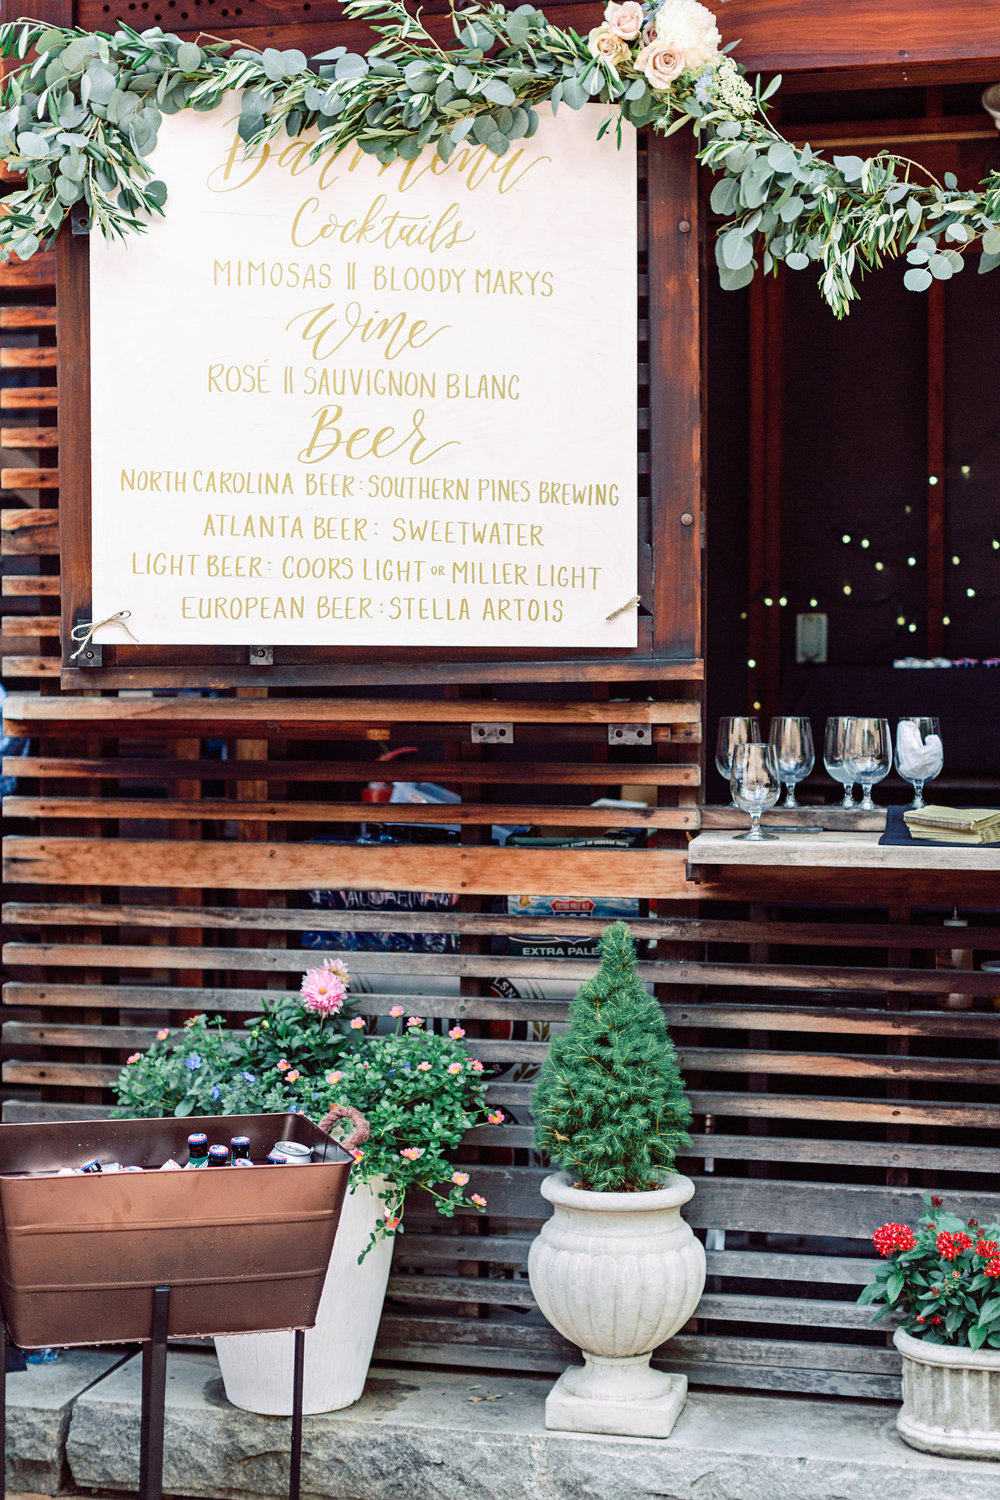 One of the 3x3 feet wood signs installed at Katherine & Grant's wedding in June. Venue was The Trolley Barn in downtown Atlanta. Florals were by the wonderful    Victory Blooms   . Photography by    Diana Lupu Photography   .